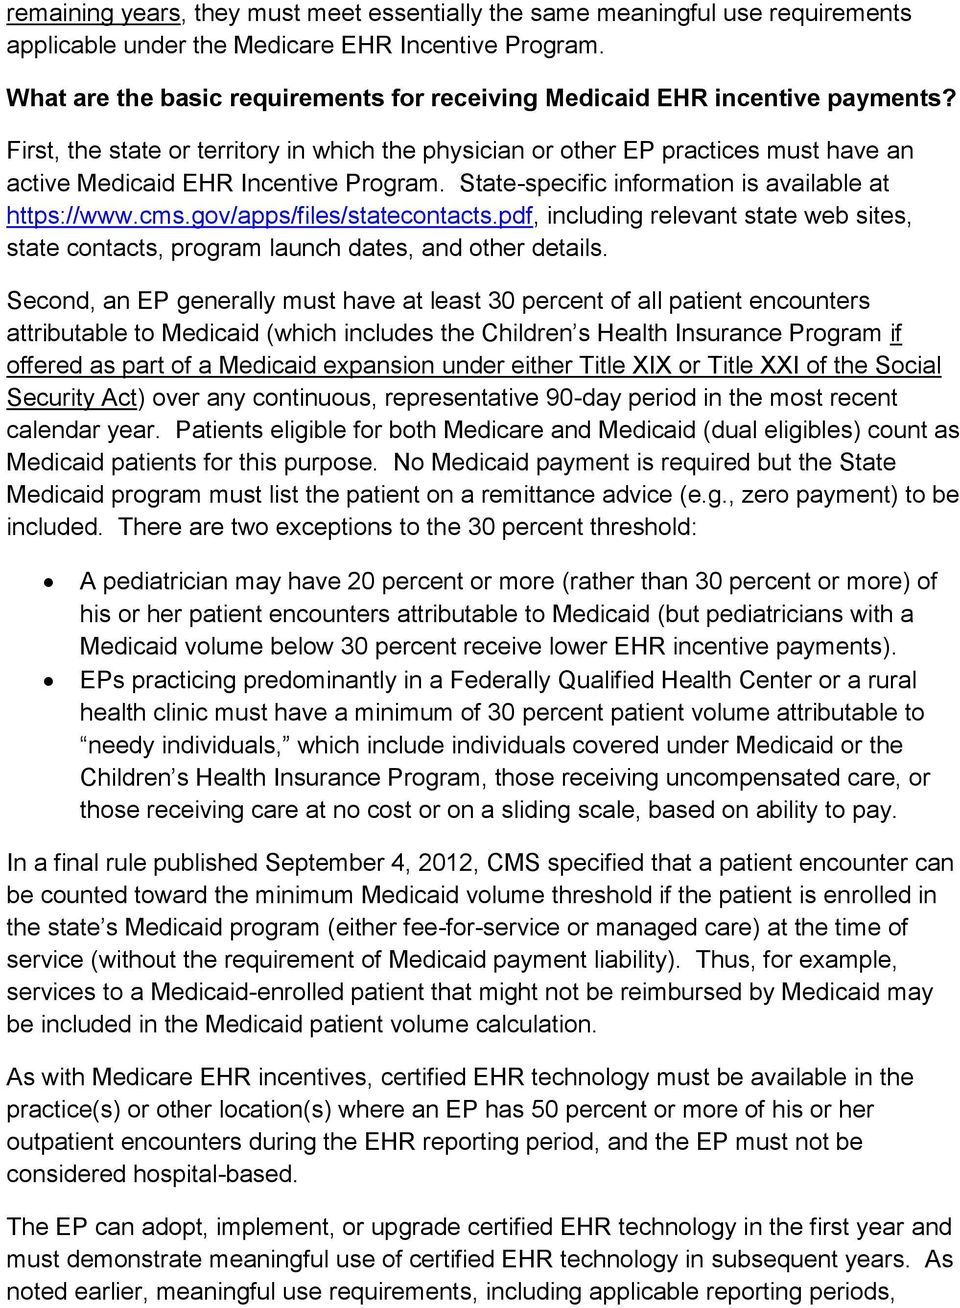 First, the state or territory in which the physician or other EP practices must have an active Medicaid EHR Incentive Program. State-specific information is available at https://www.cms.